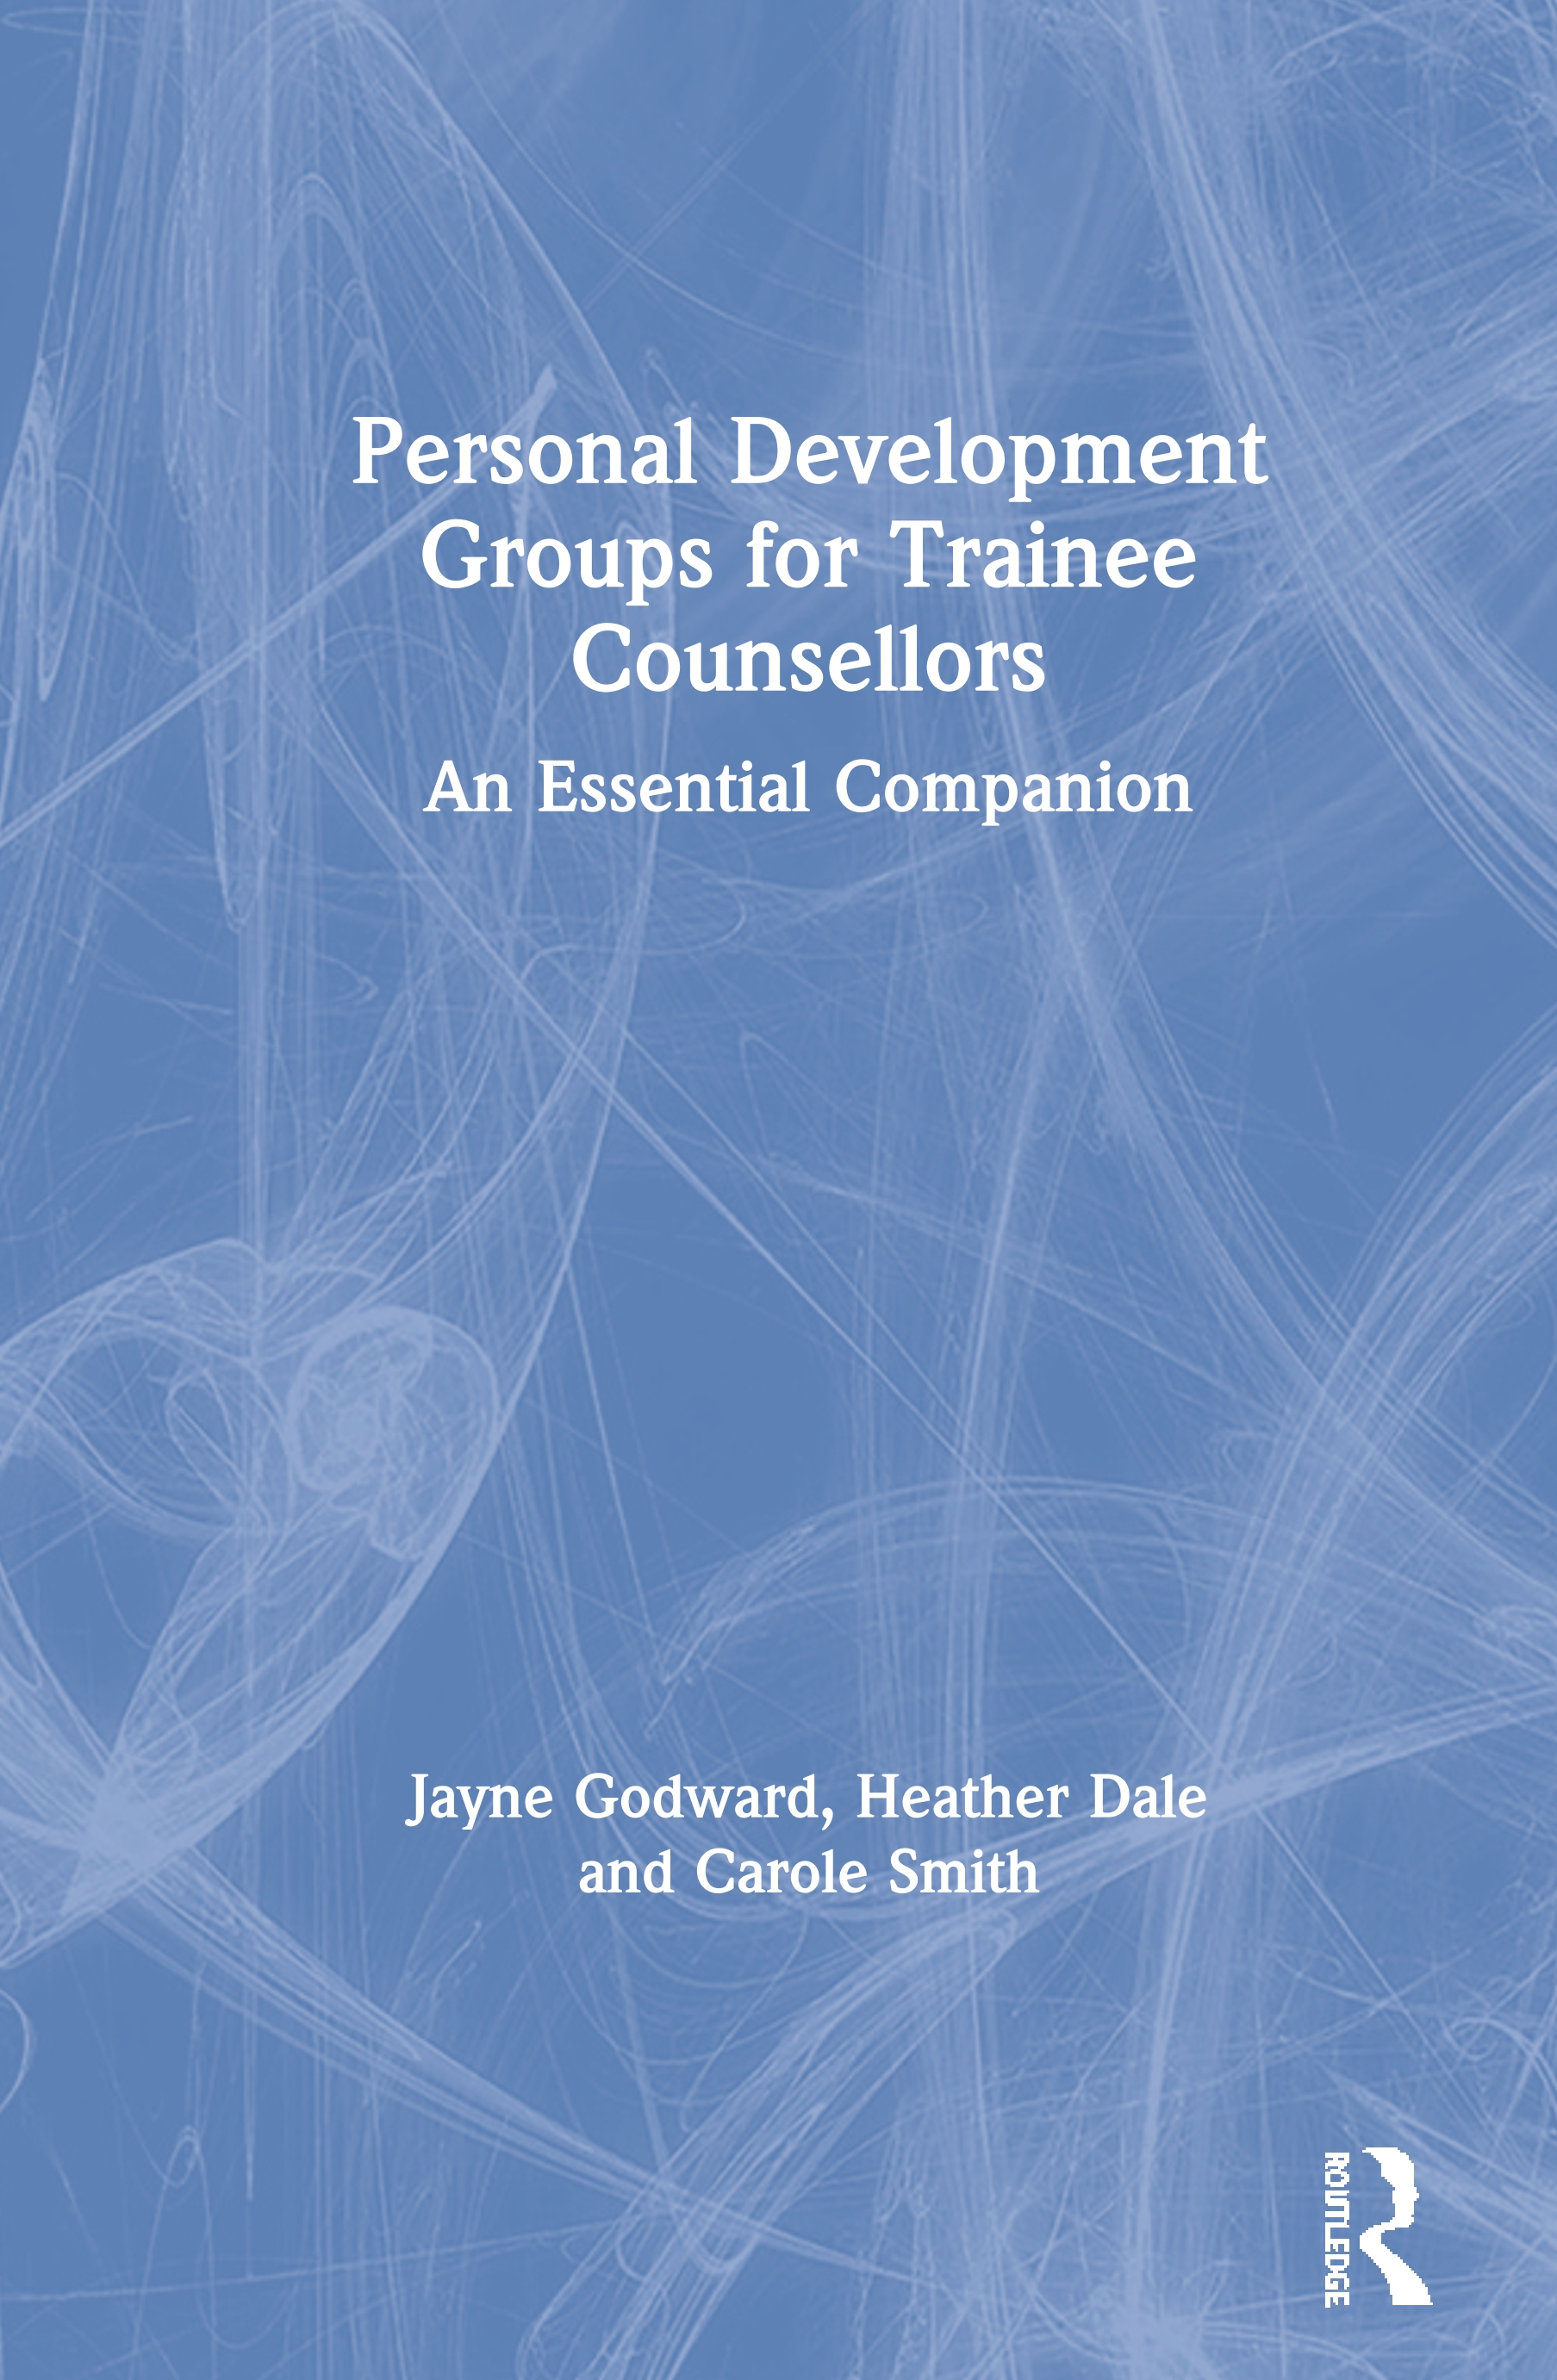 Experiences of personal development groups